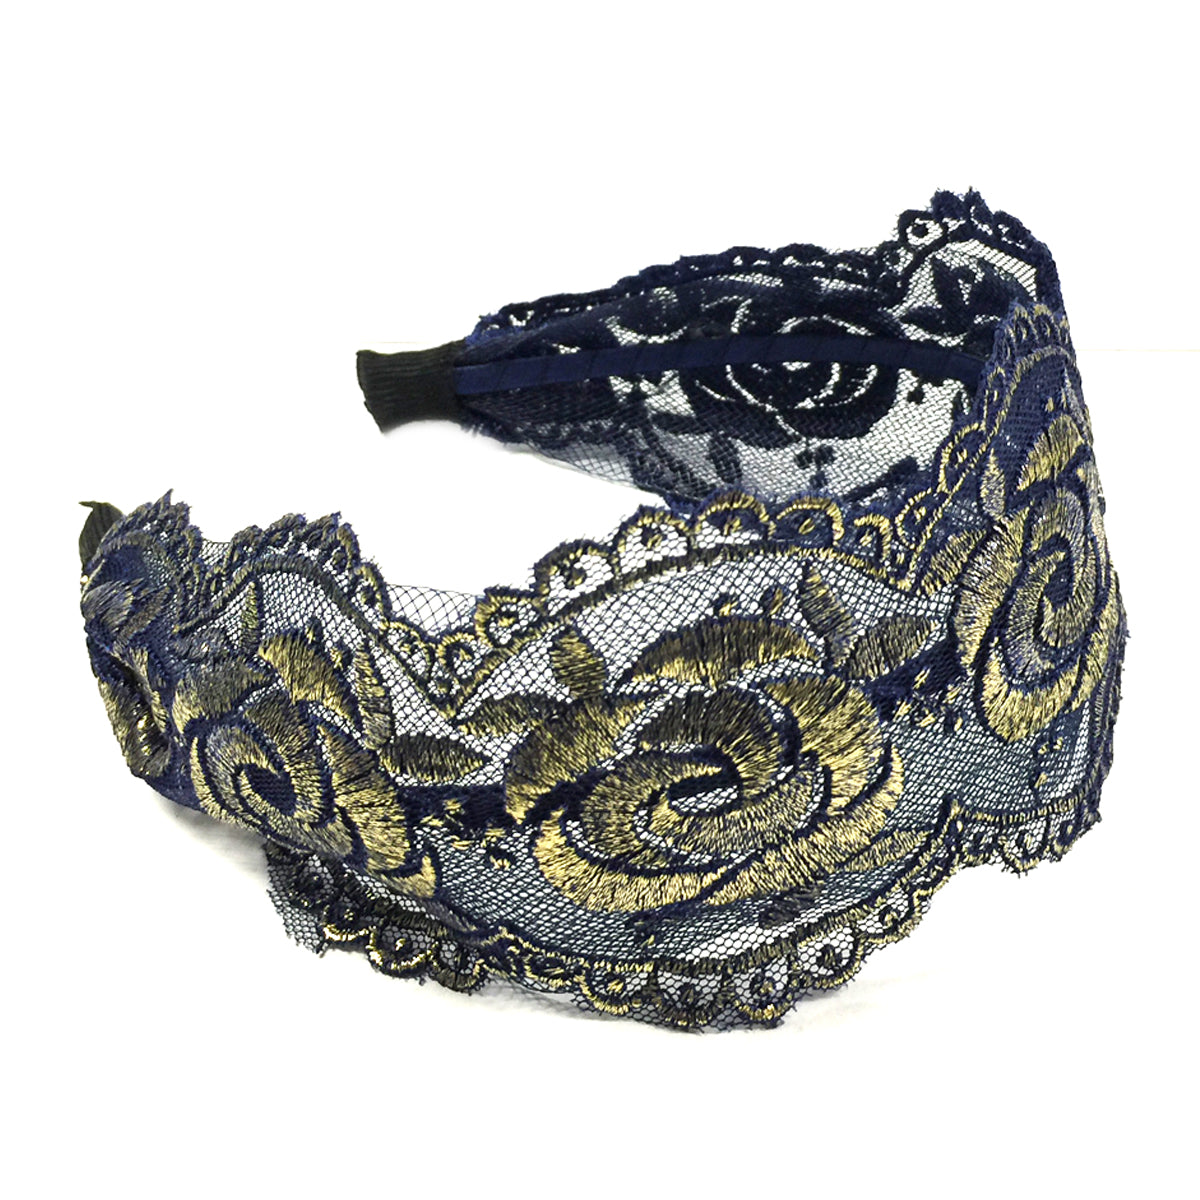 Wrapables Elegant Lace Headband with Gold Tone Threading